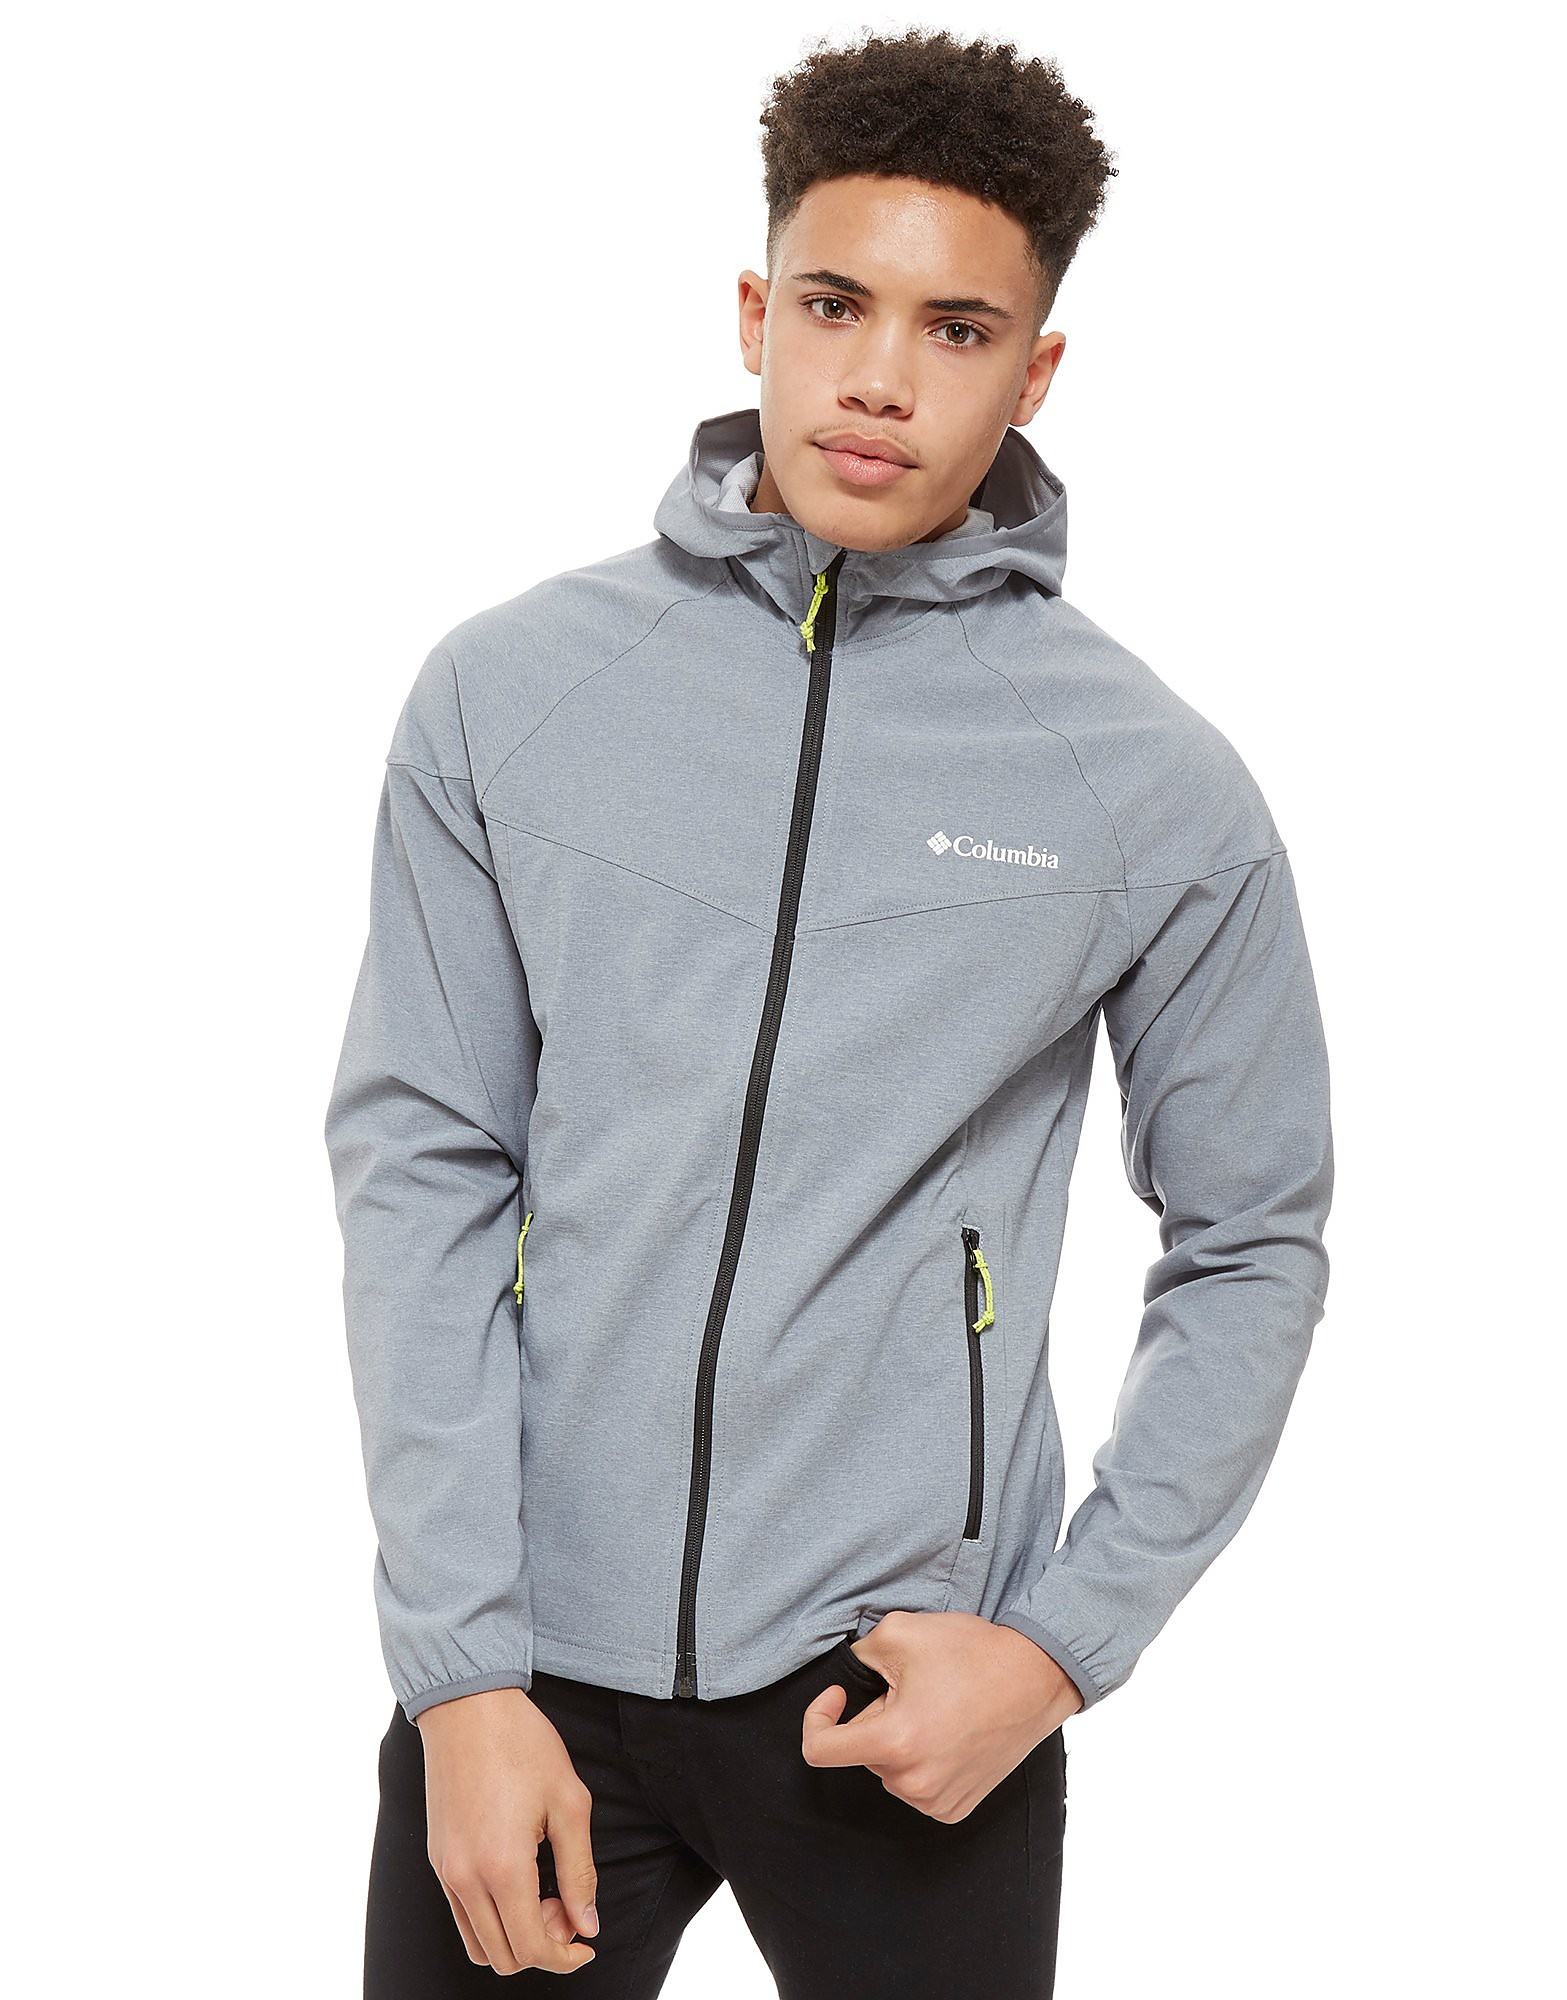 Columbia Softshell Zip Through Hooded Jacket